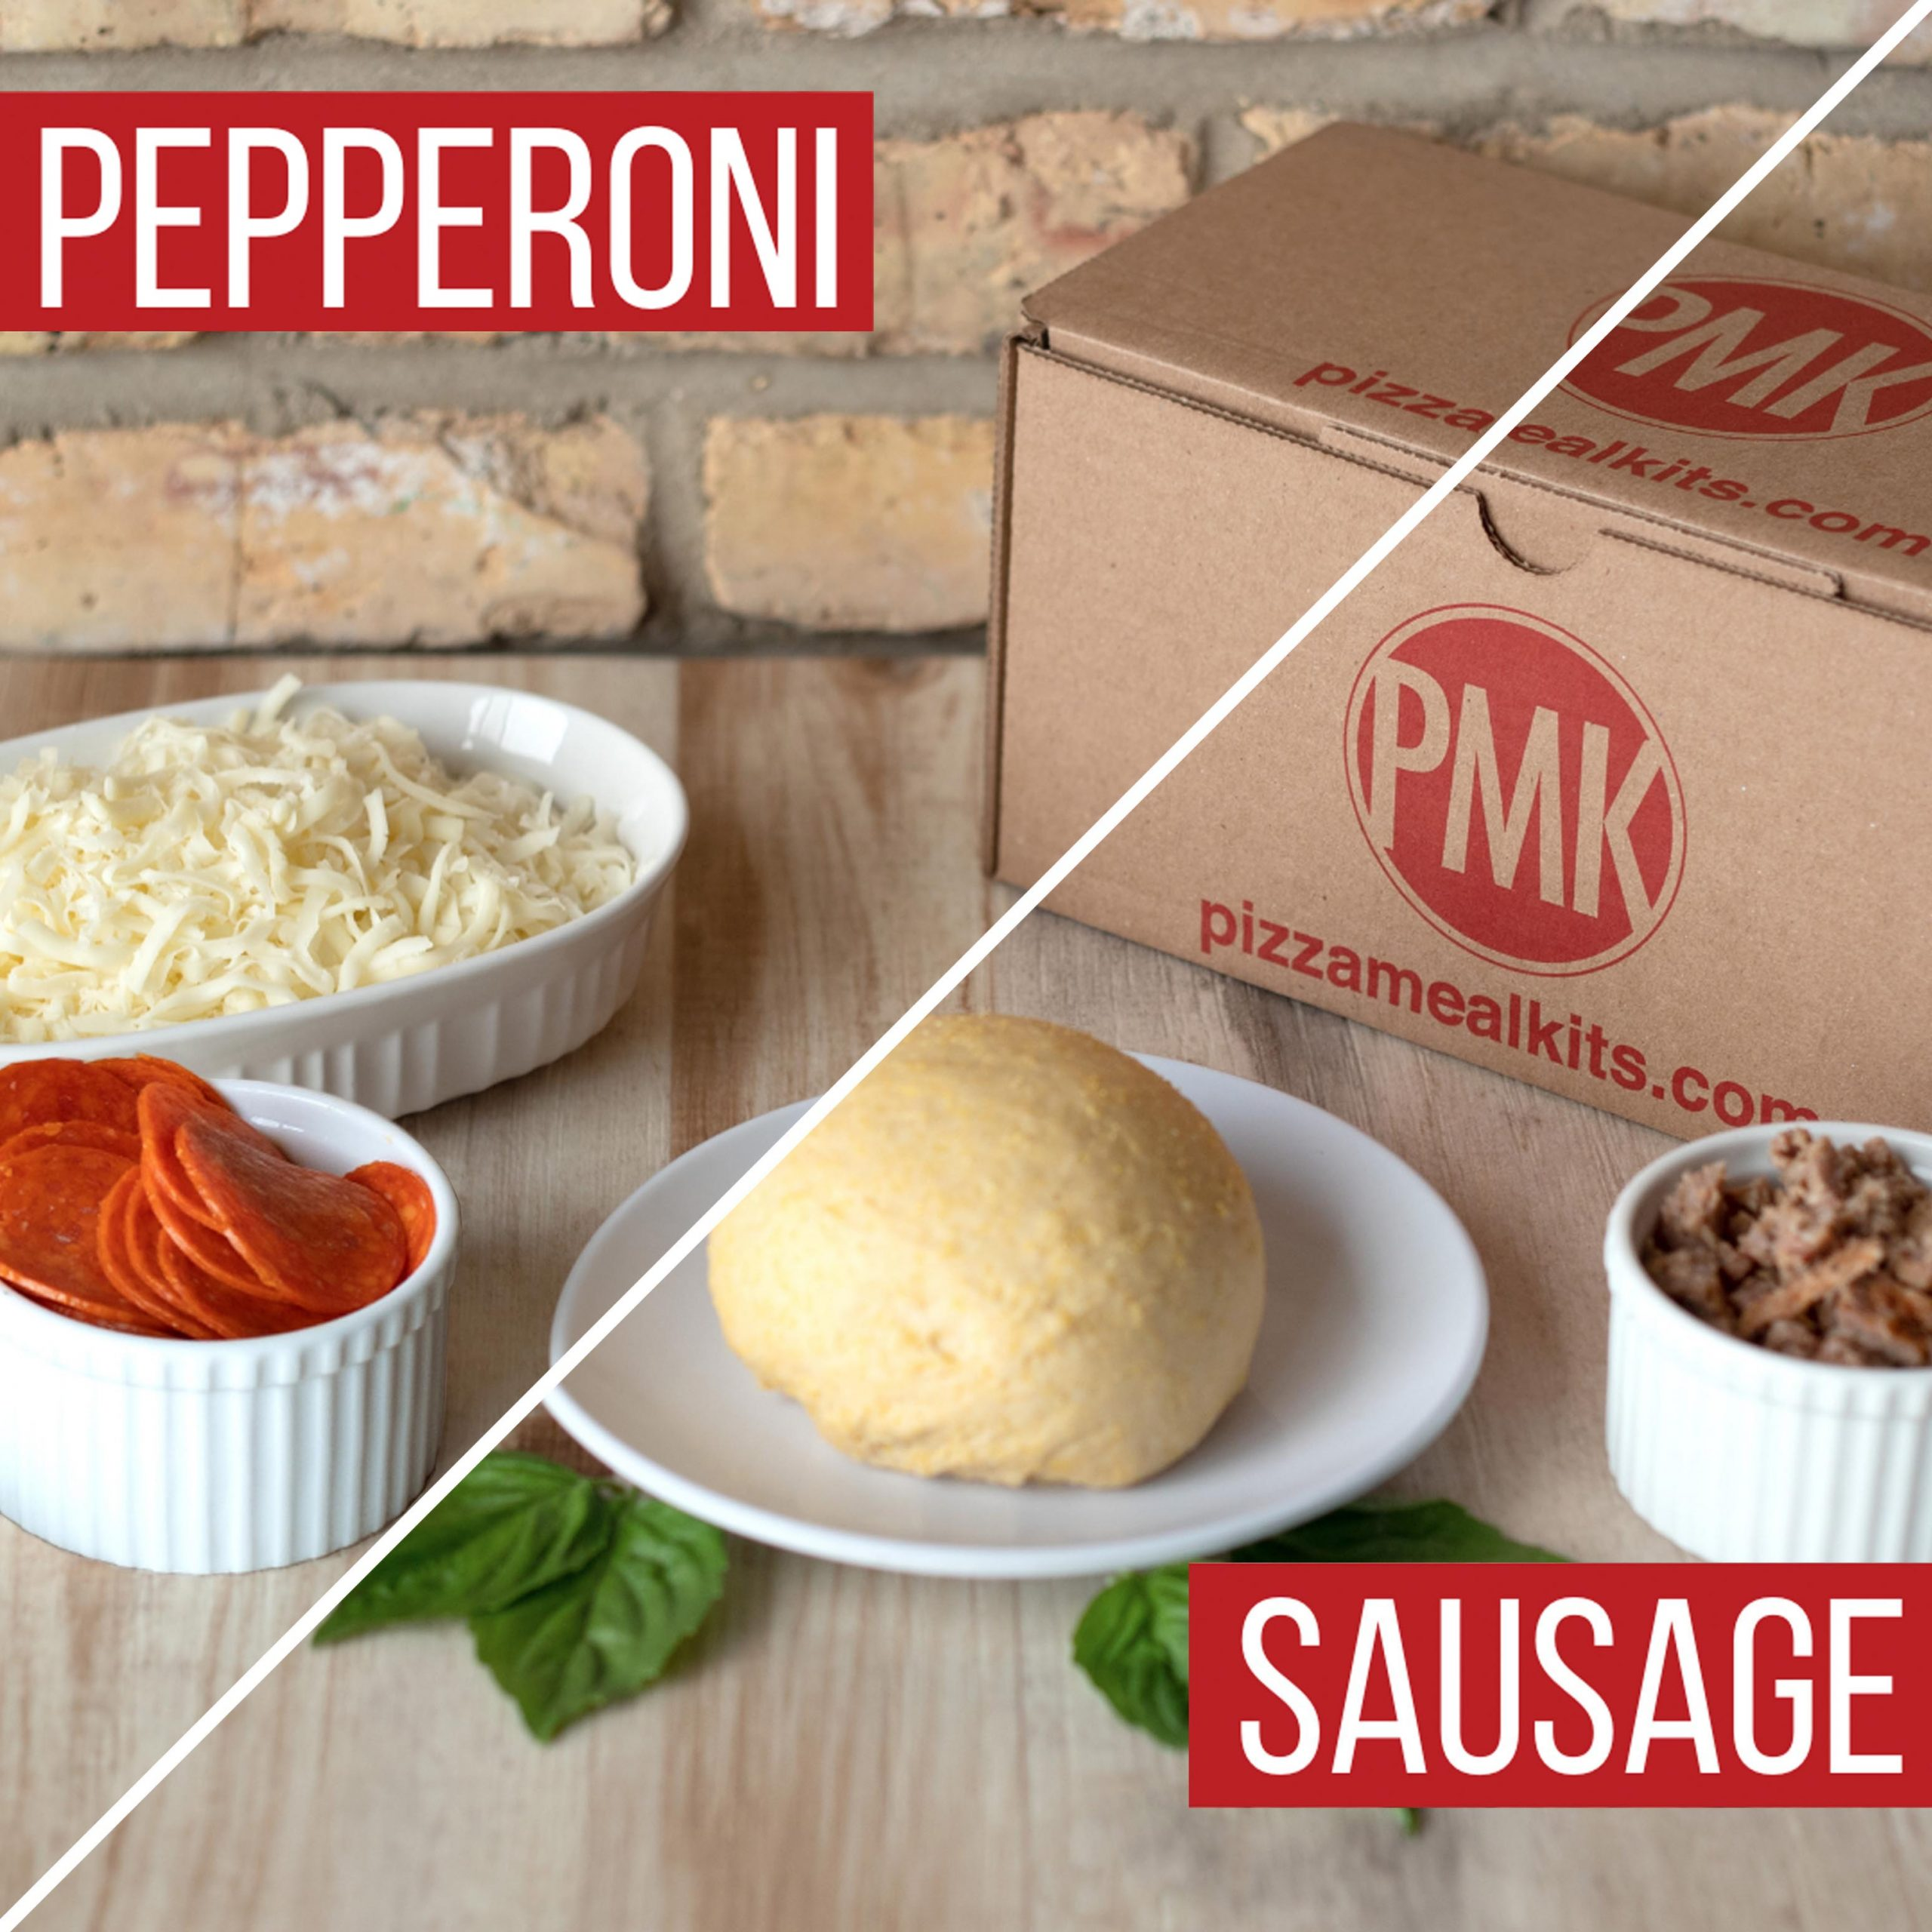 Pizza Meal Kits - Sausage & Pepperoni Pizza Bundle